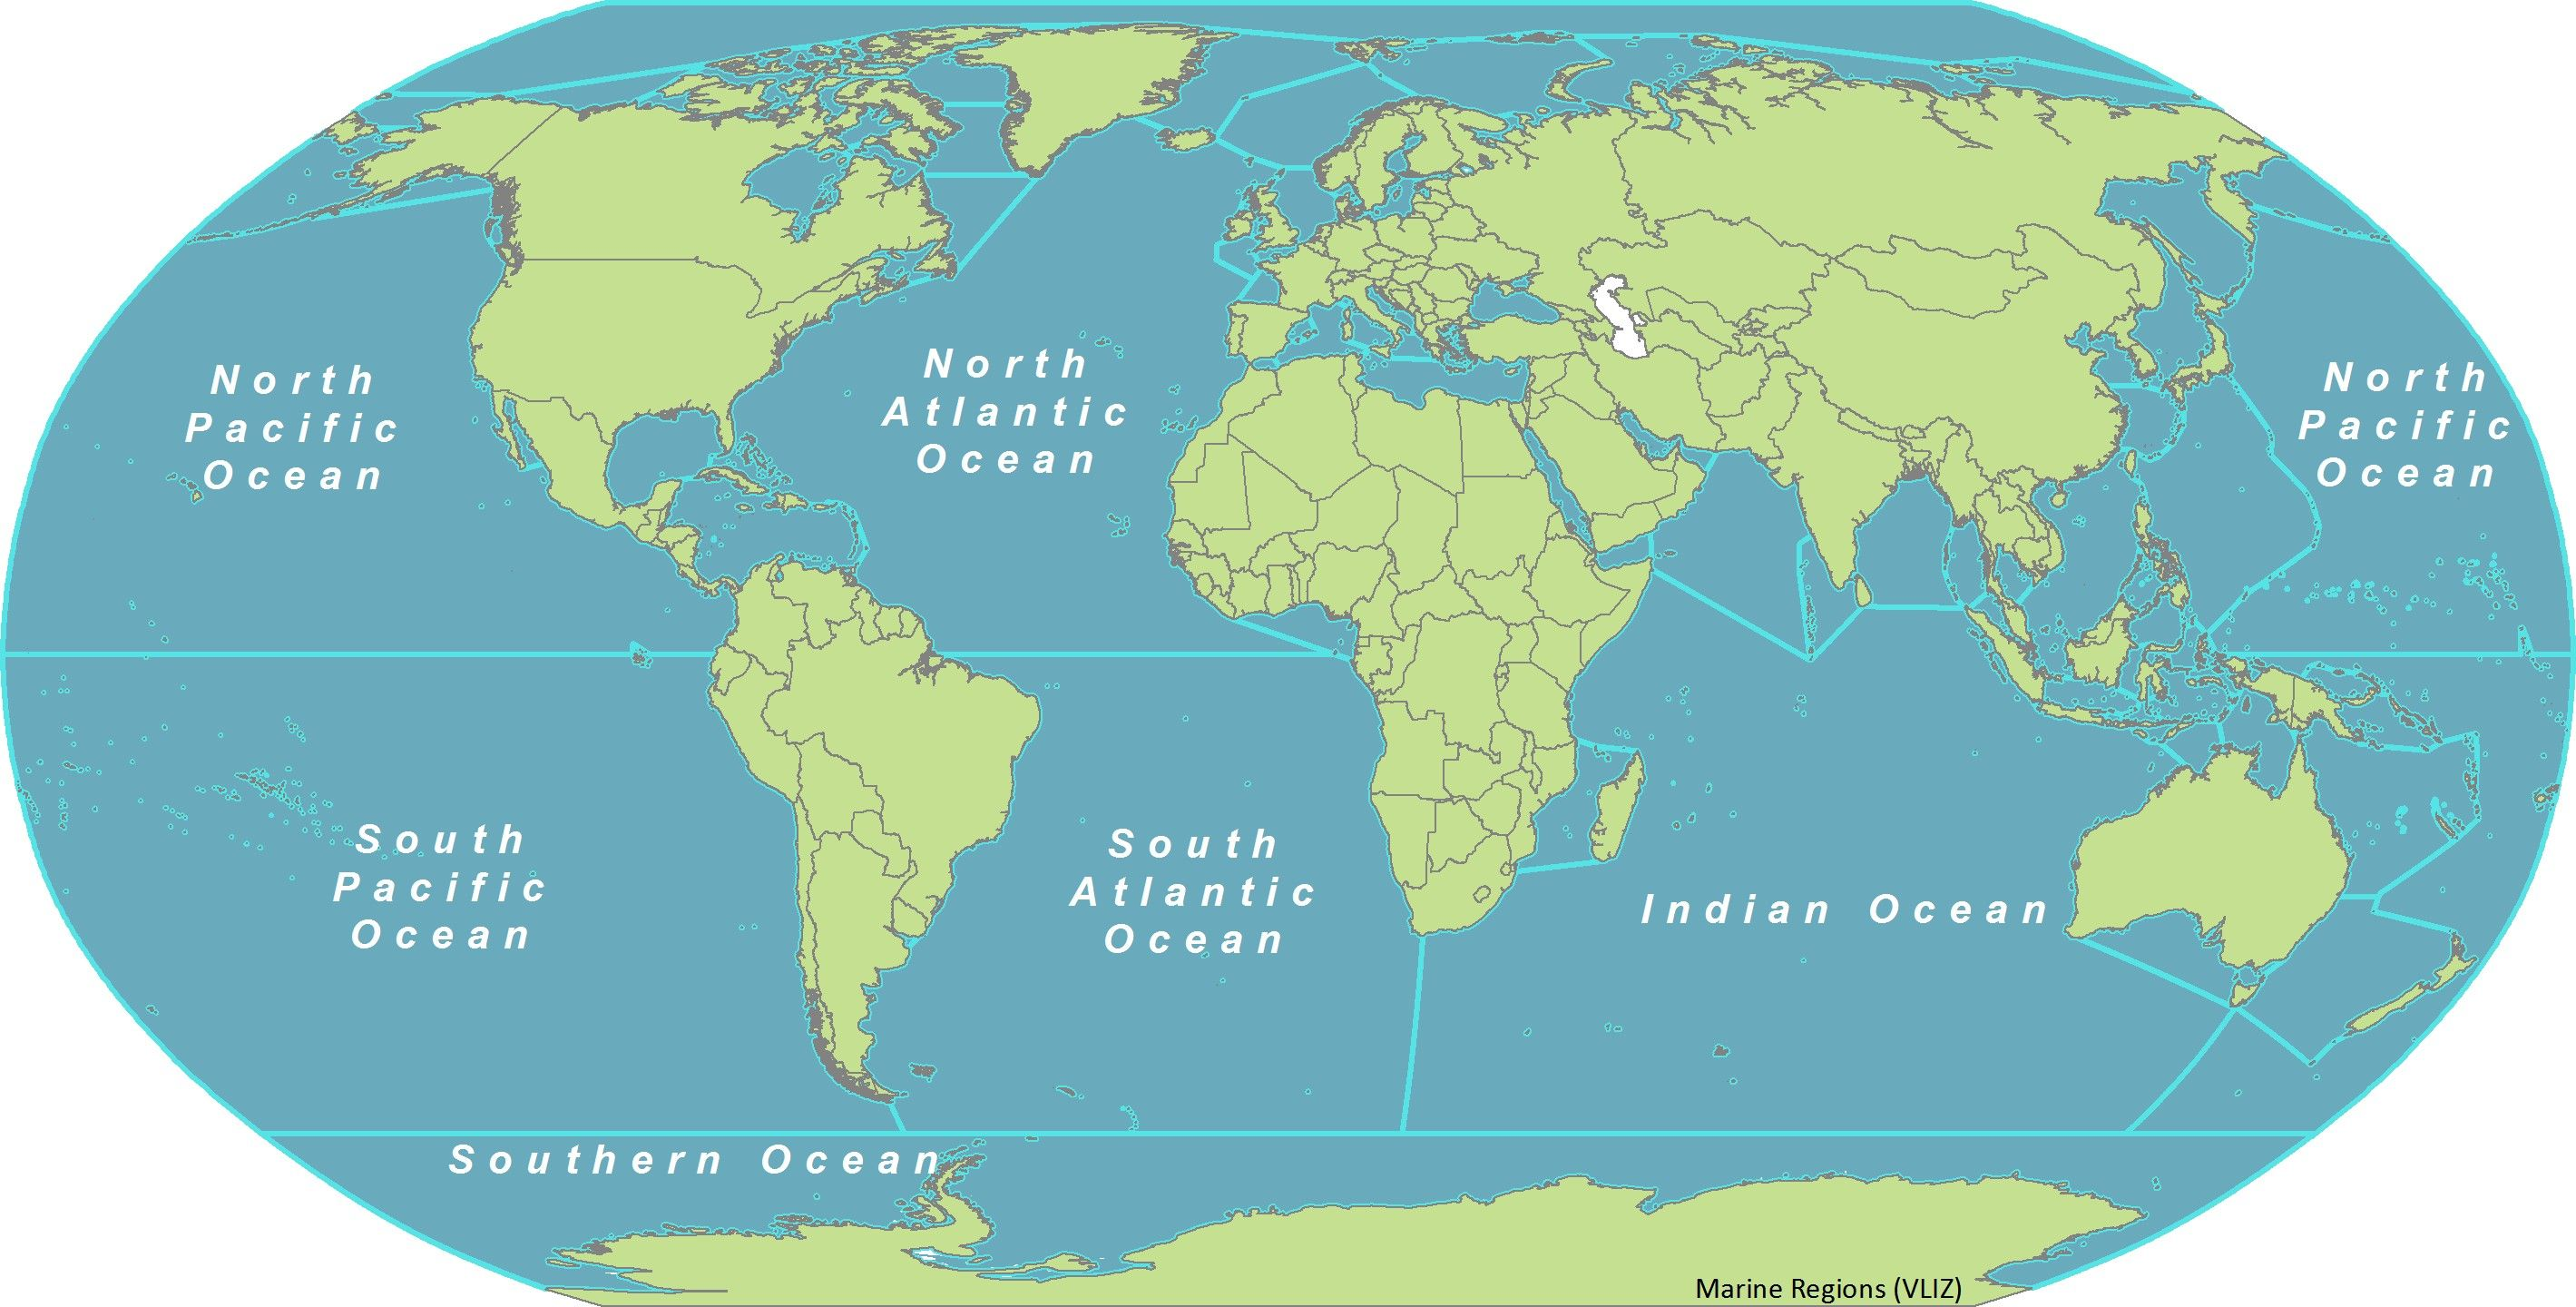 Specific World Map With Details World Map Telugu